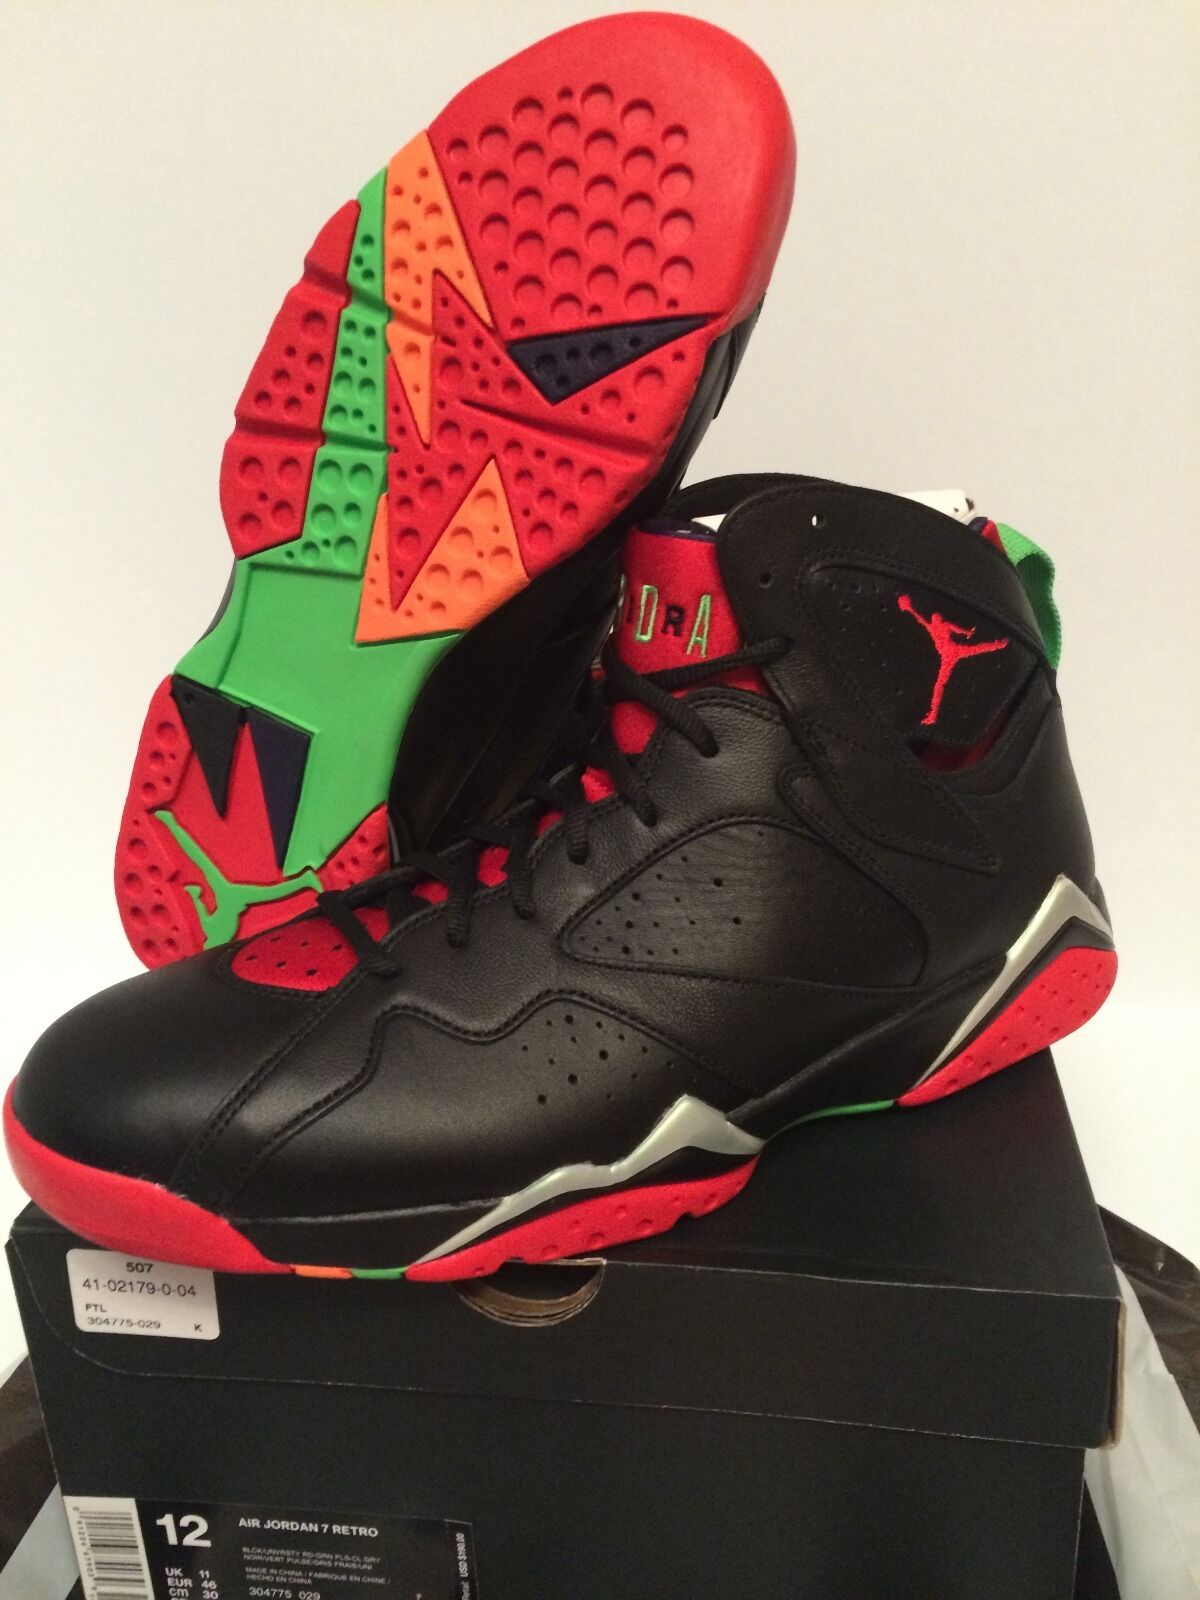 Air the Jordan Retro 7 Marvin the Air Martian Size 12 DS 100% authentic w/receipt in pic d66c66